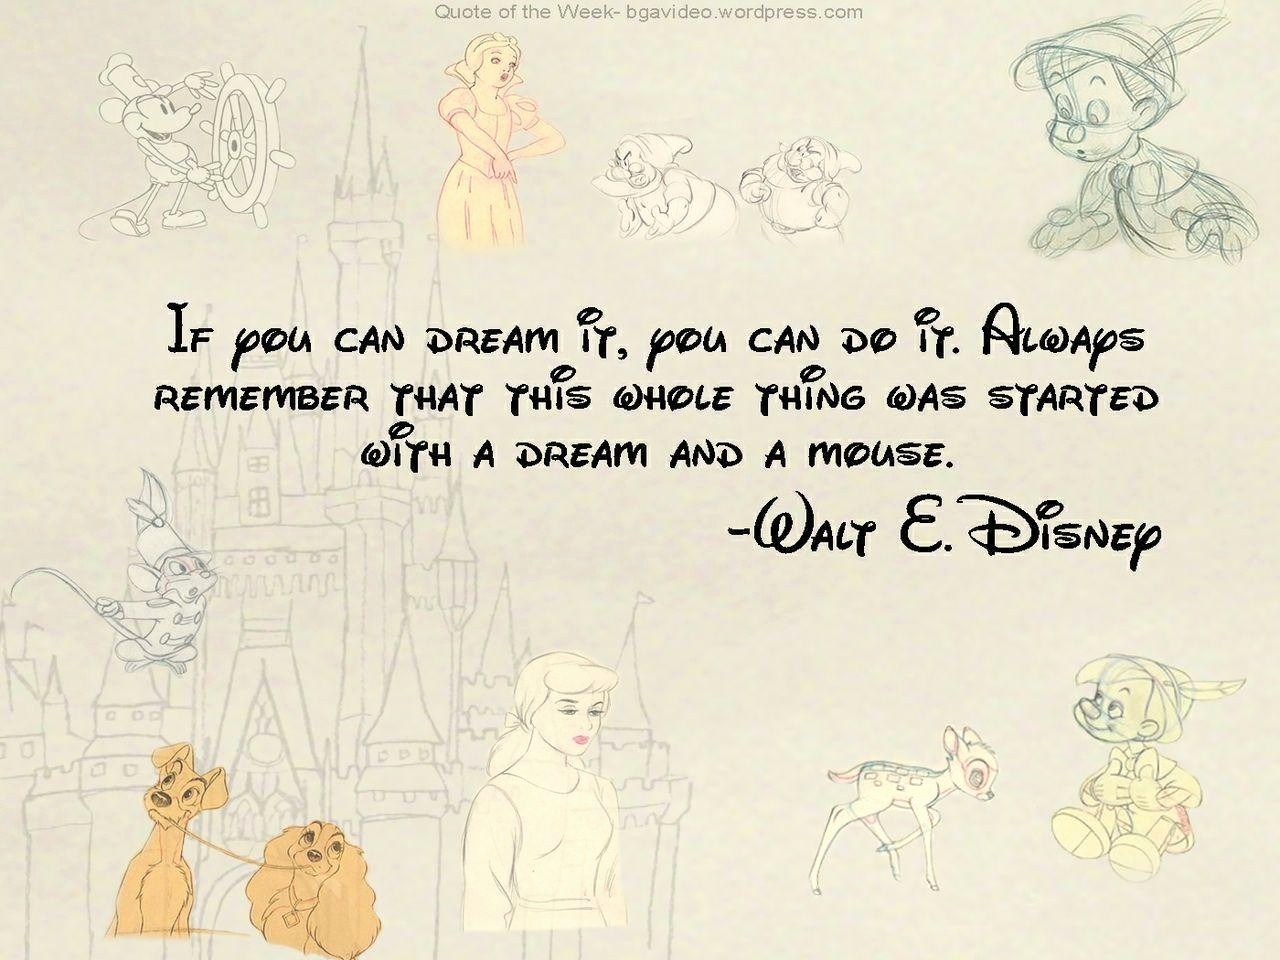 Desktop Backgrounds Quotes Disney 2898683 Hd Wallpaper Backgrounds Download